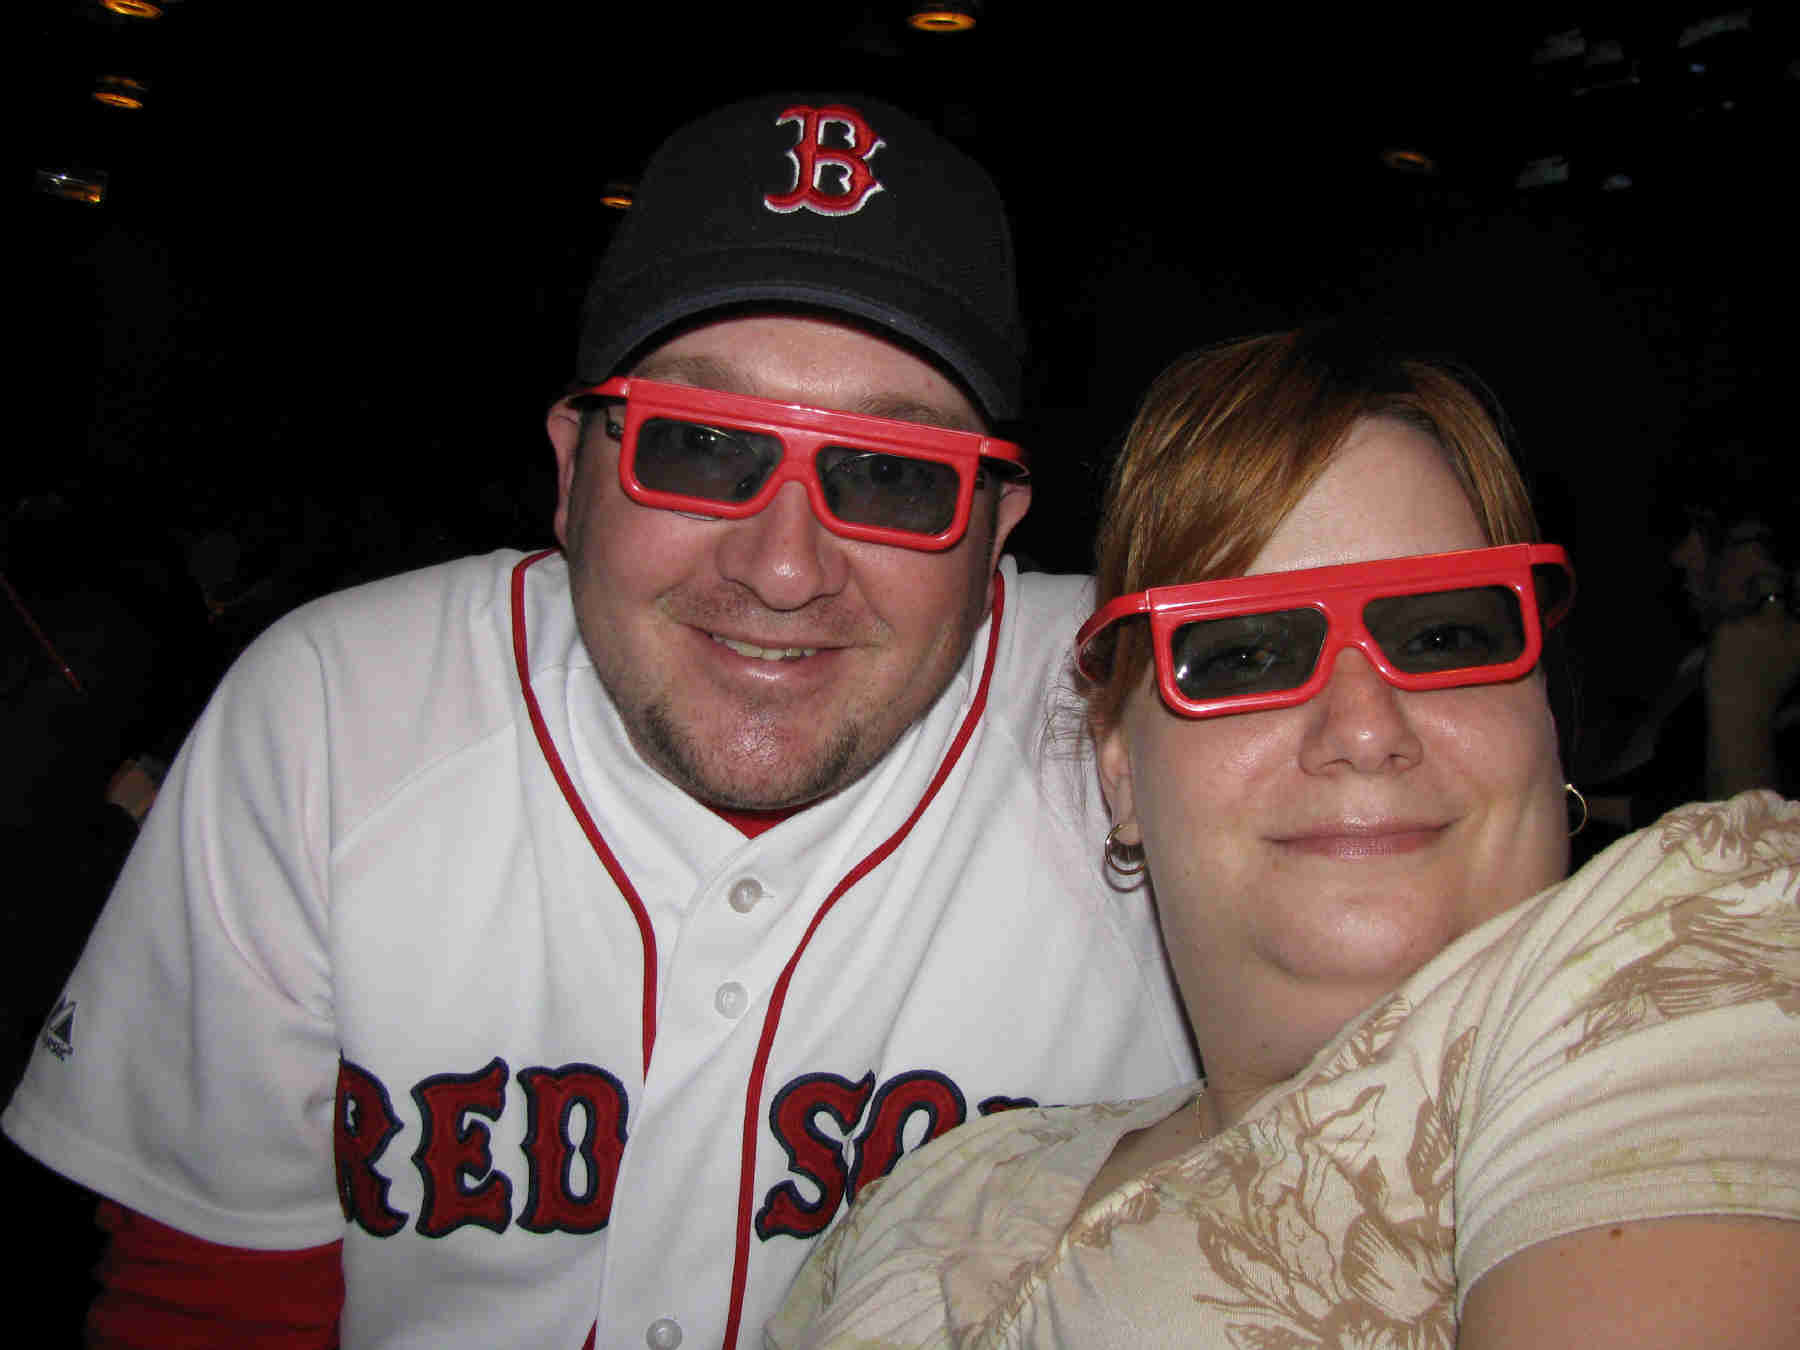 Dan and Wife Heather wearing fun red framed glasses